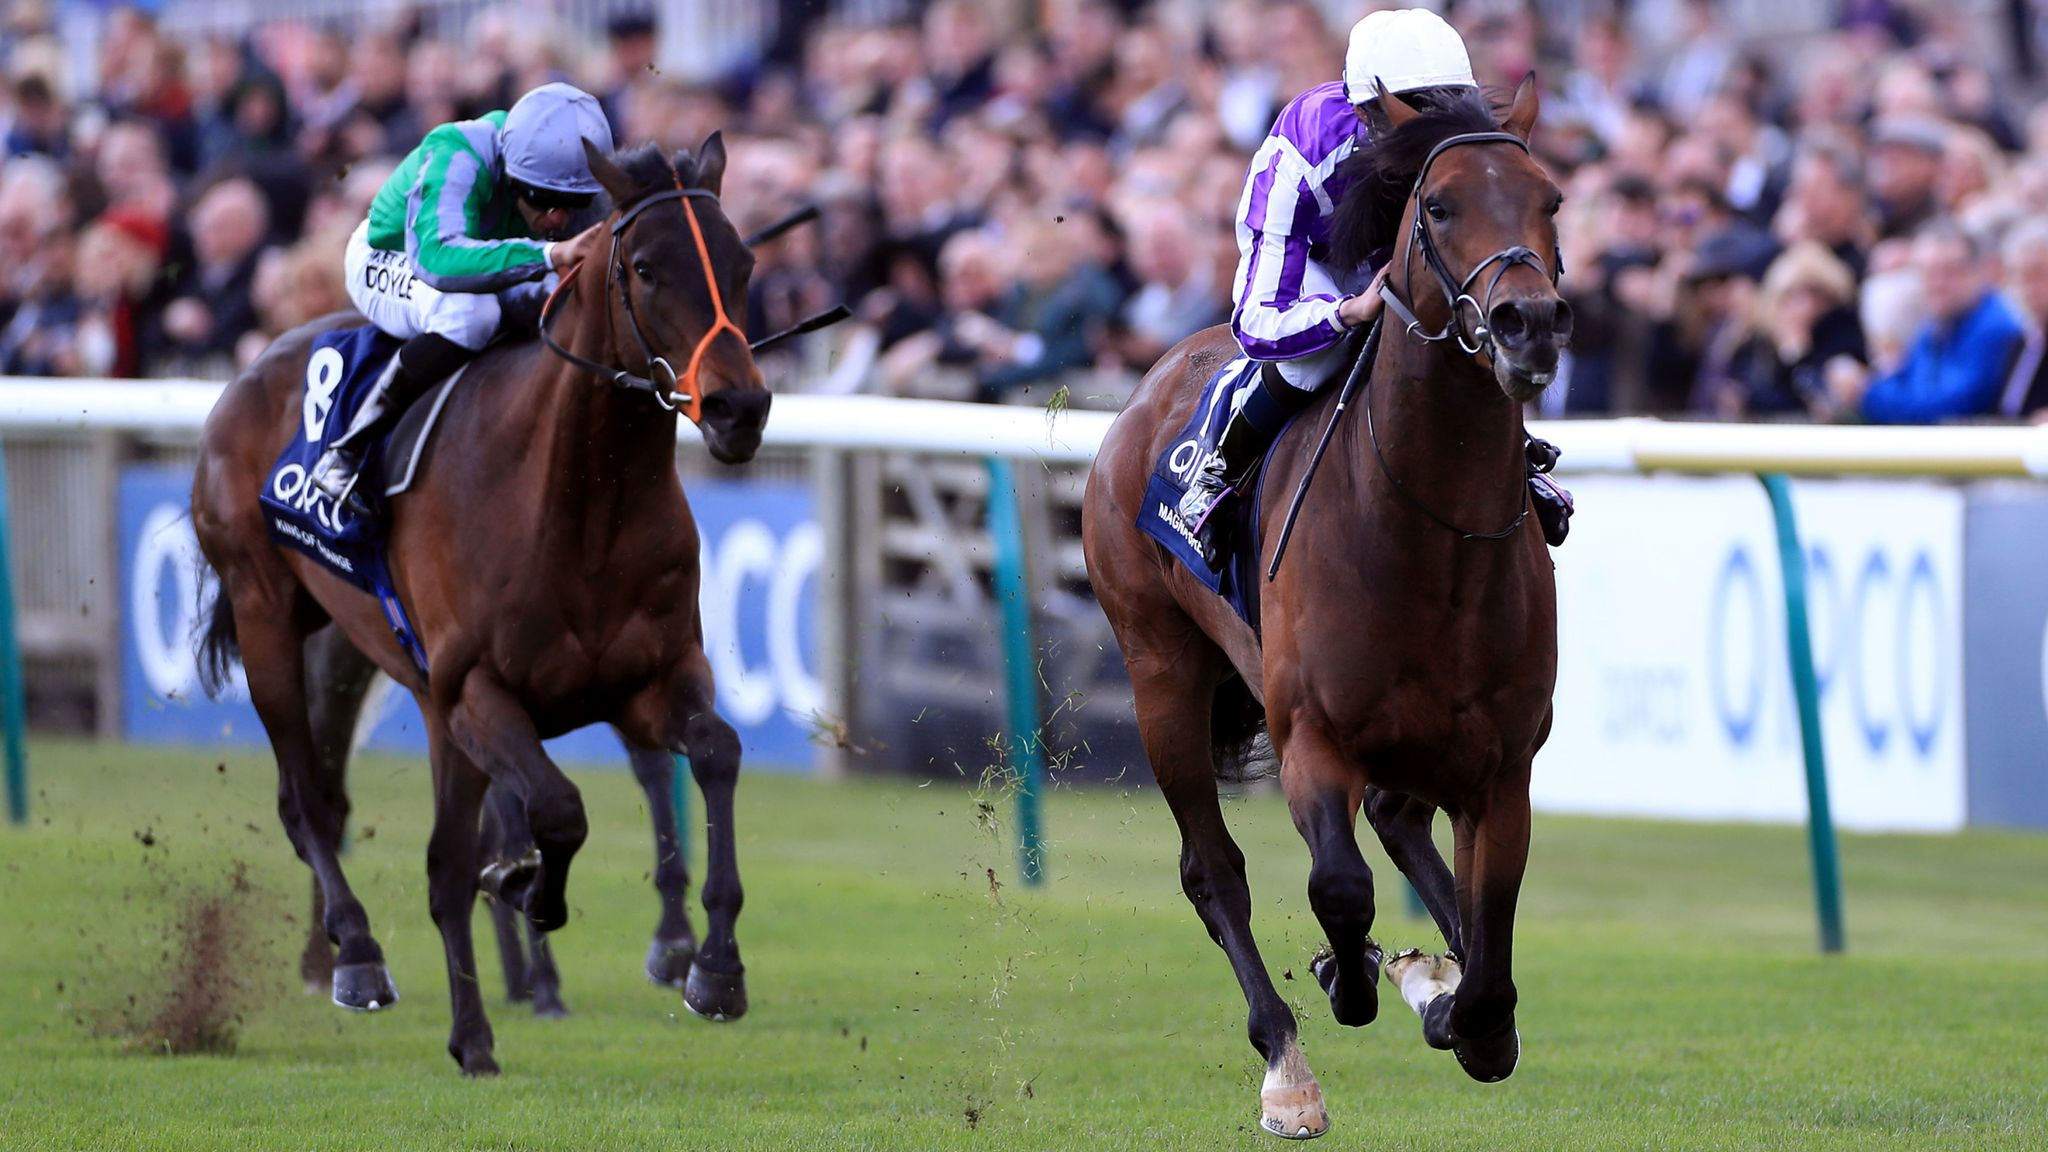 Freddy Tylicki previews the Queen Elizabeth II Stakes at Ascot